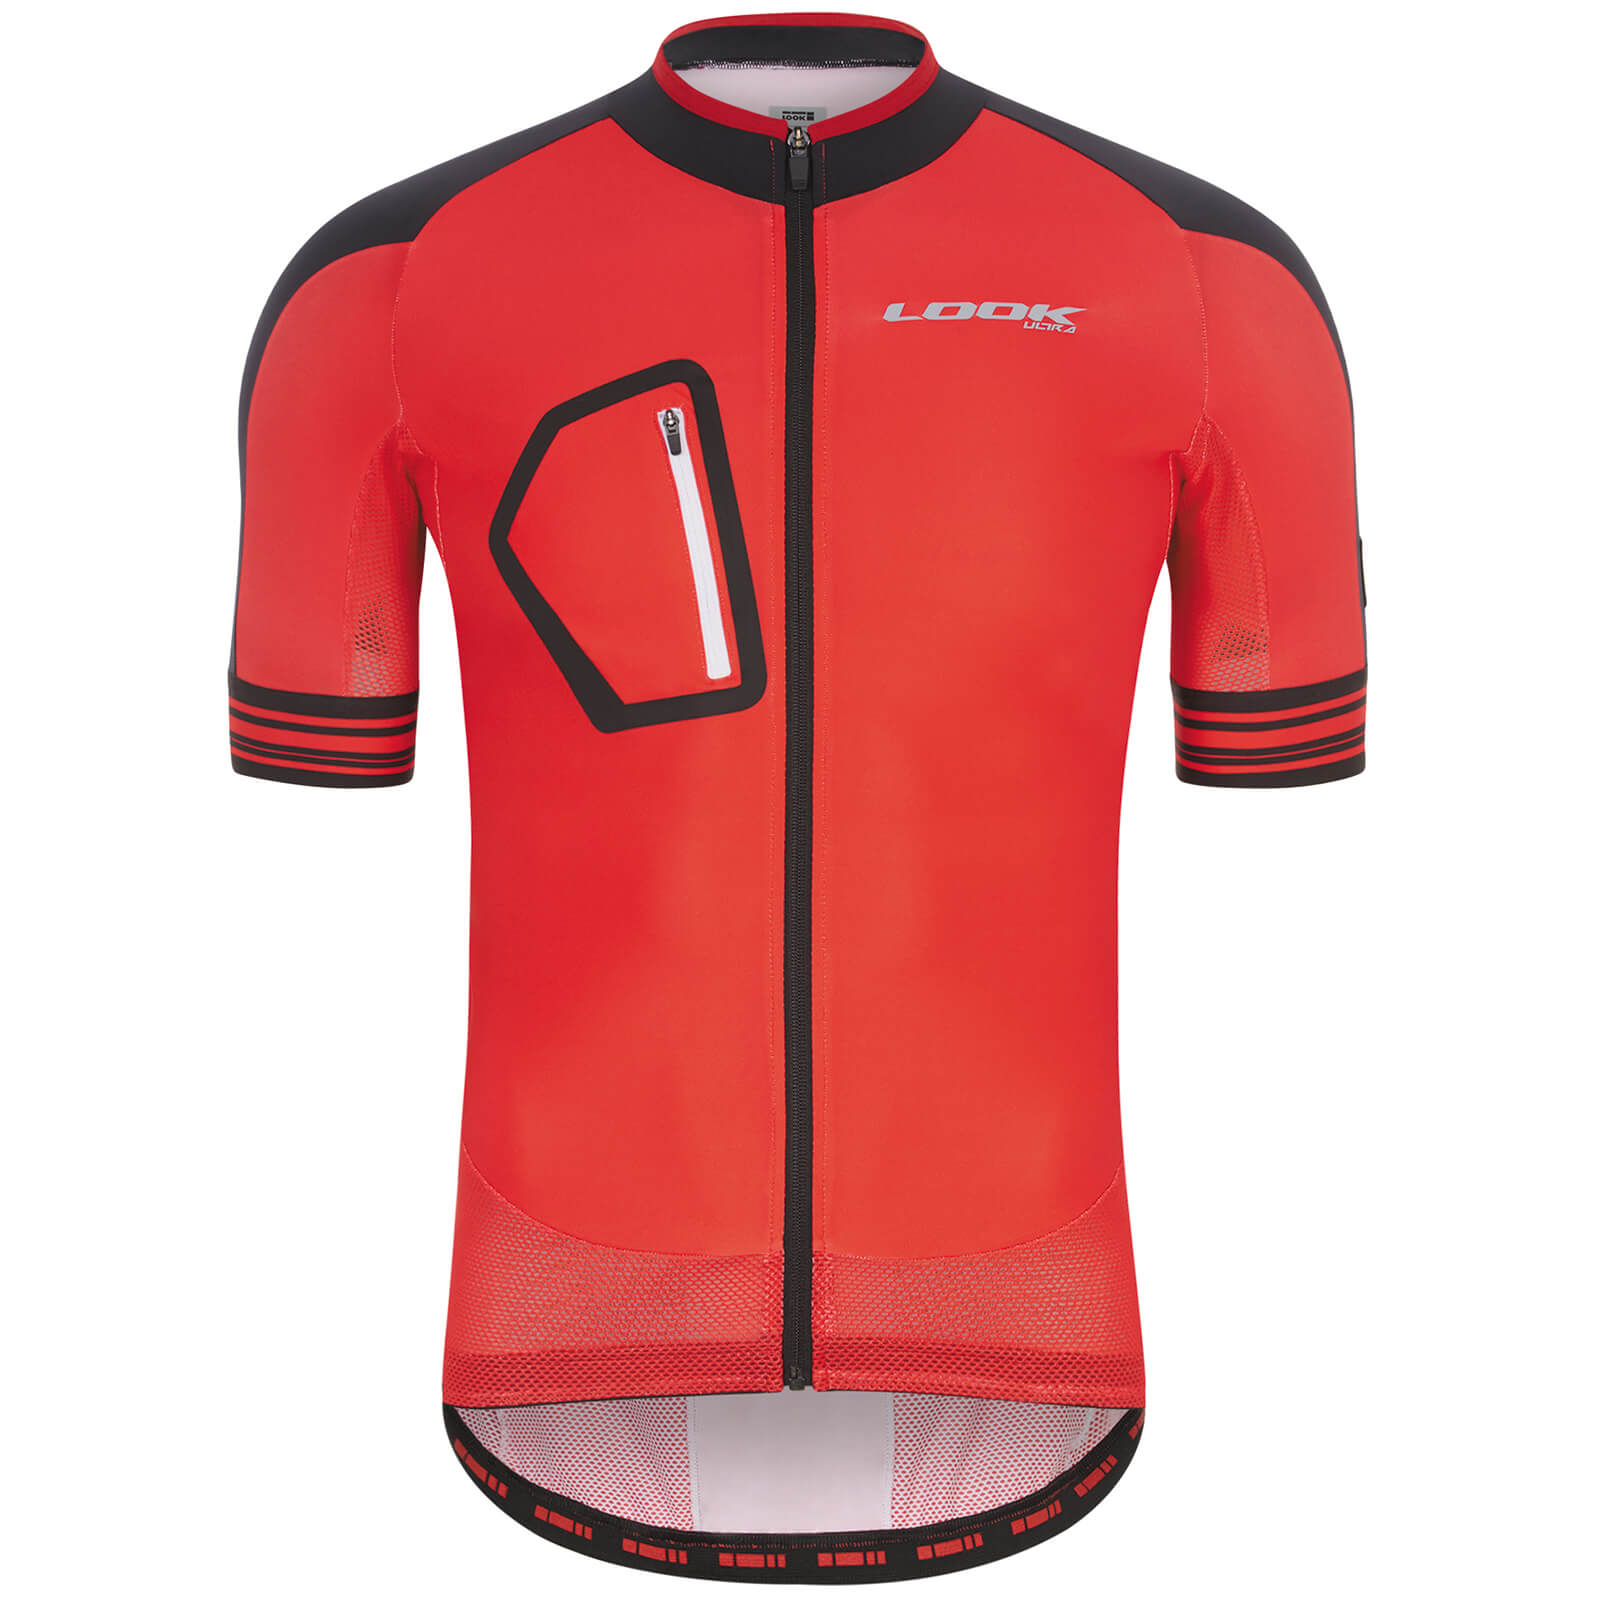 Look Ultra Jersey - Black/Red